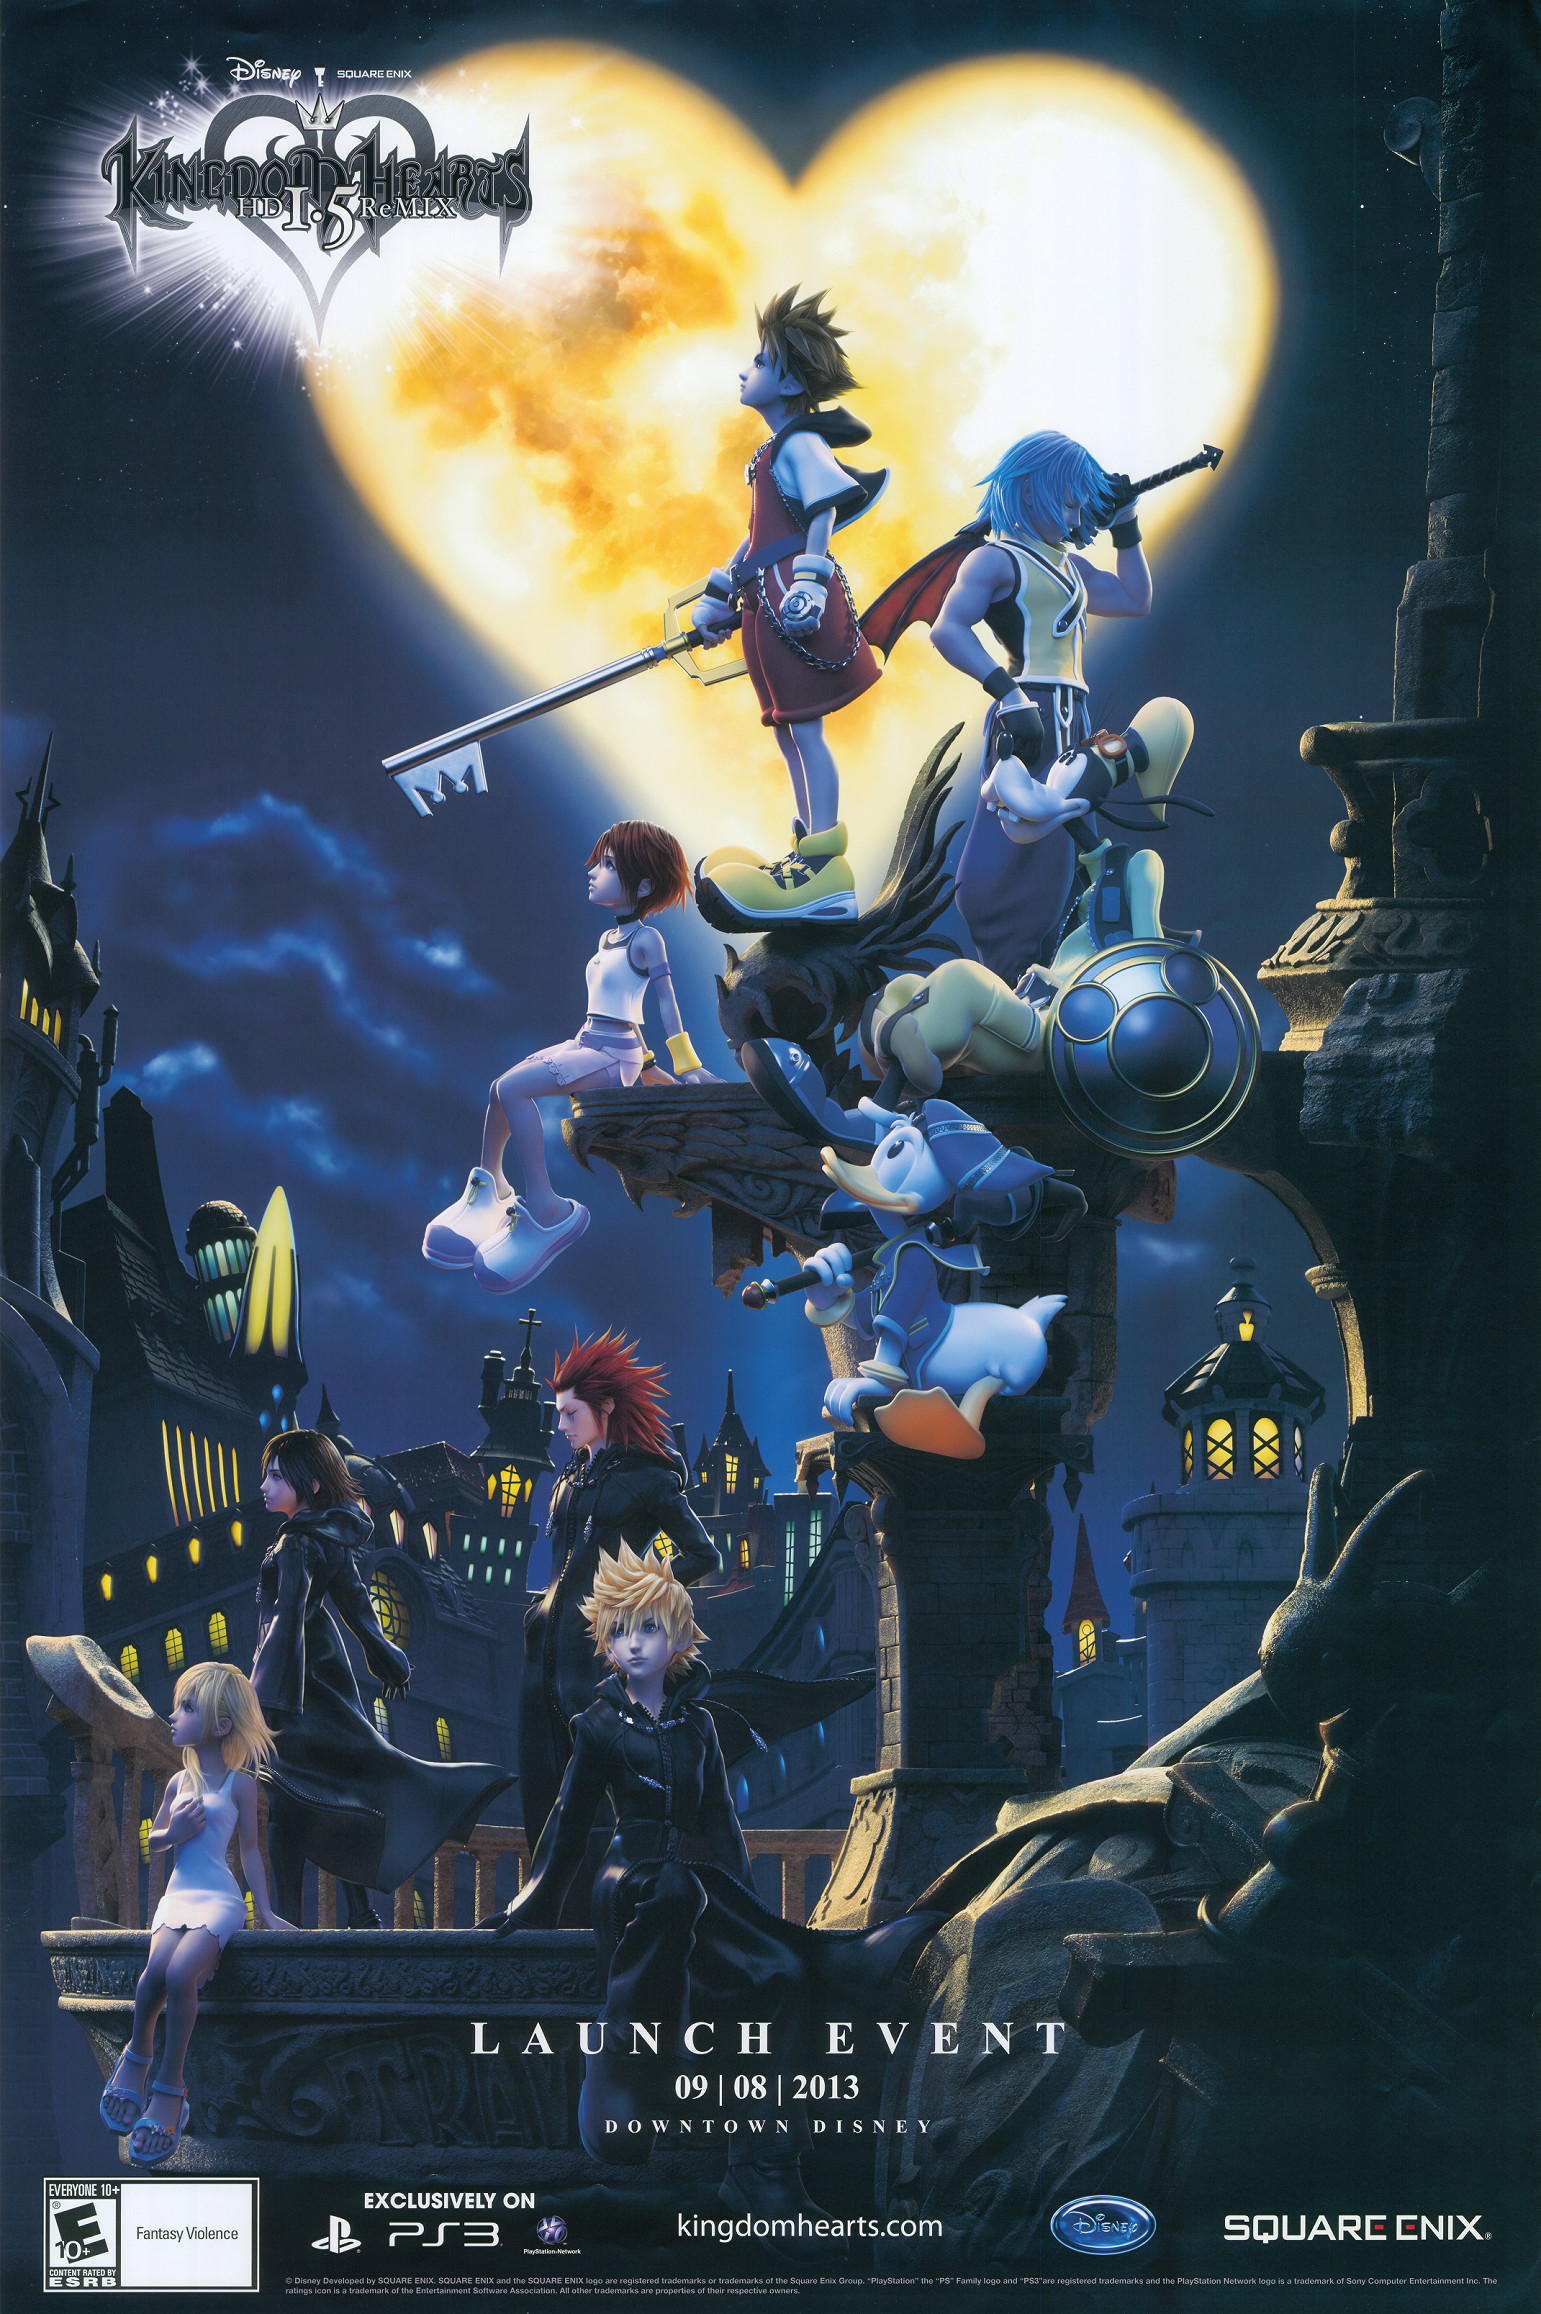 Kingdom Hearts—loved these games—release another already!